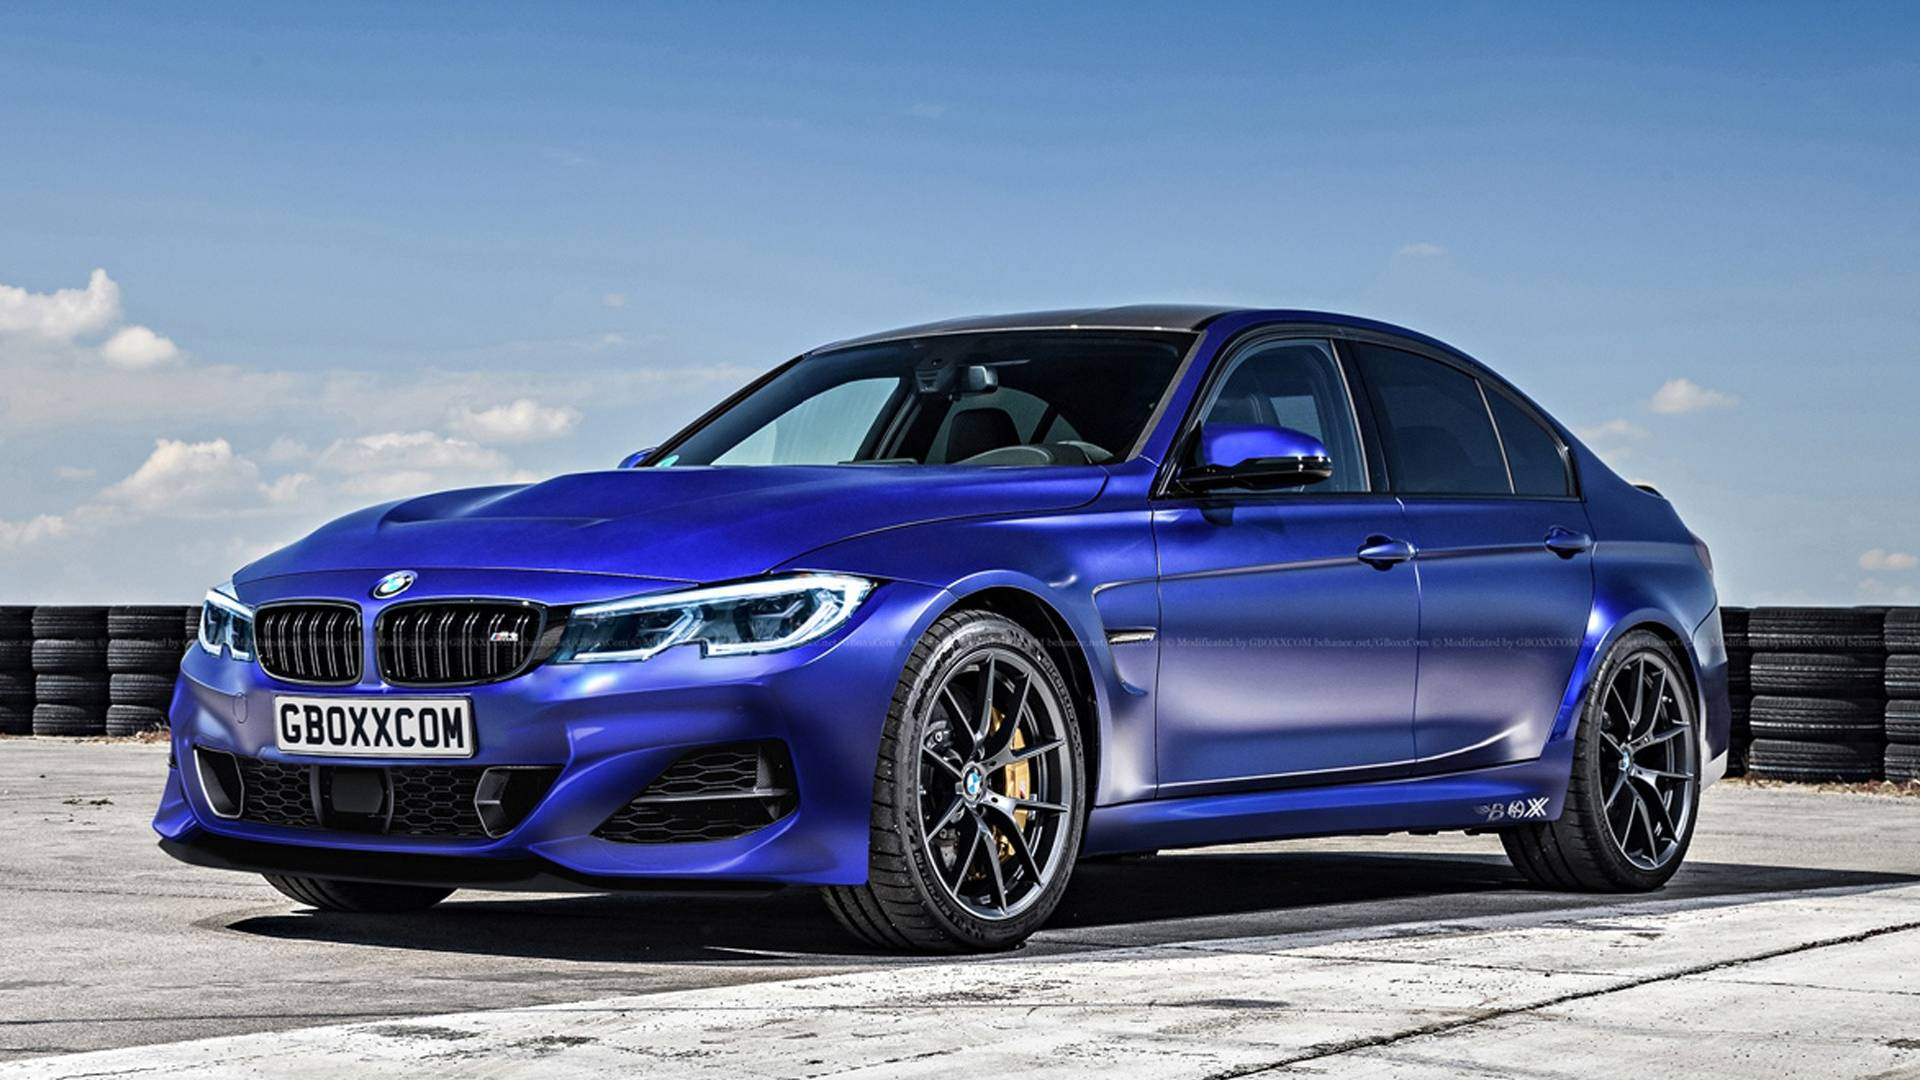 63 Best Review 2020 Bmw M3 Awd Specs and Review with 2020 Bmw M3 Awd